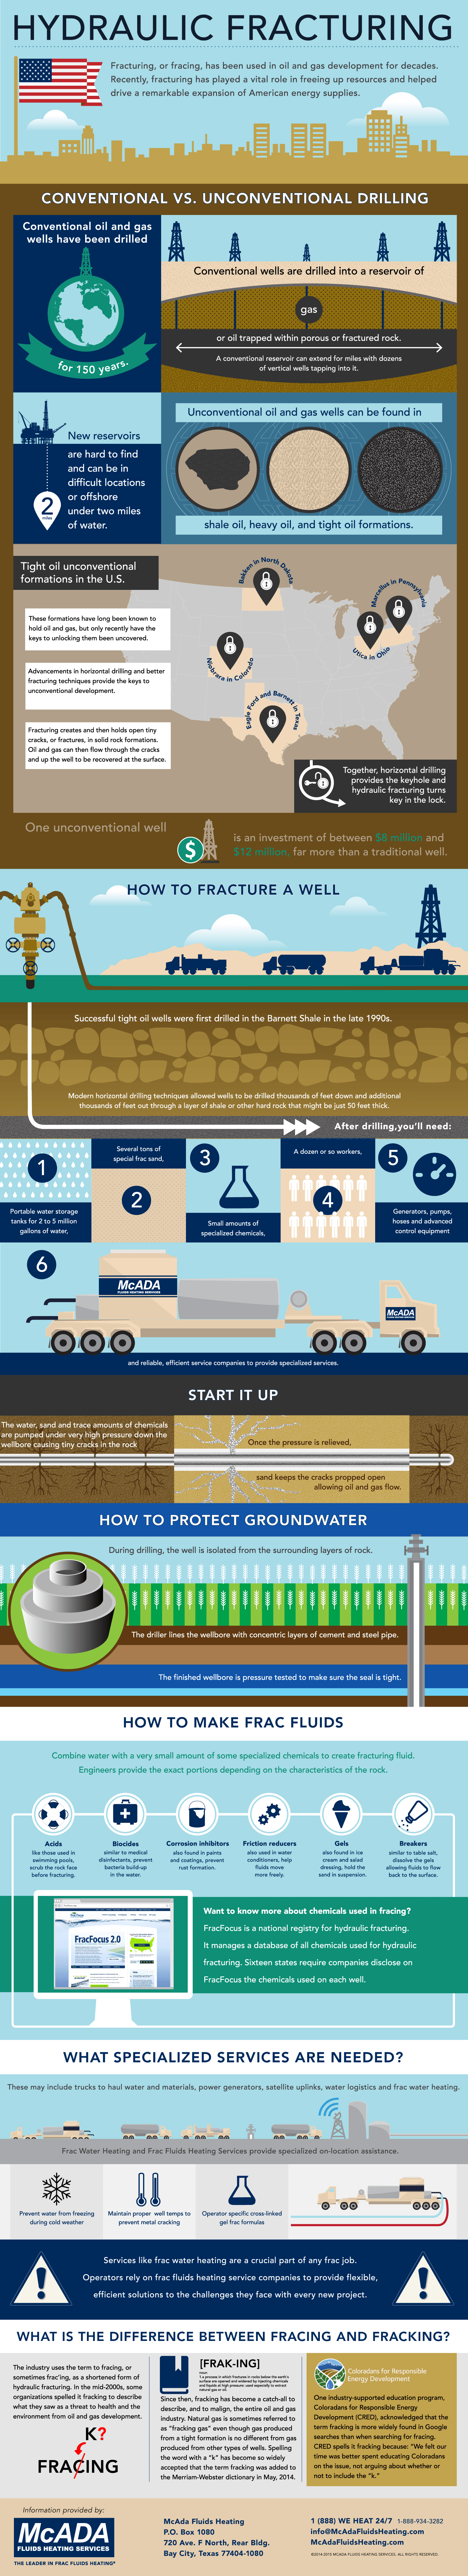 McAda Fluids Heating Services Hydraulic Fracturing Infographic